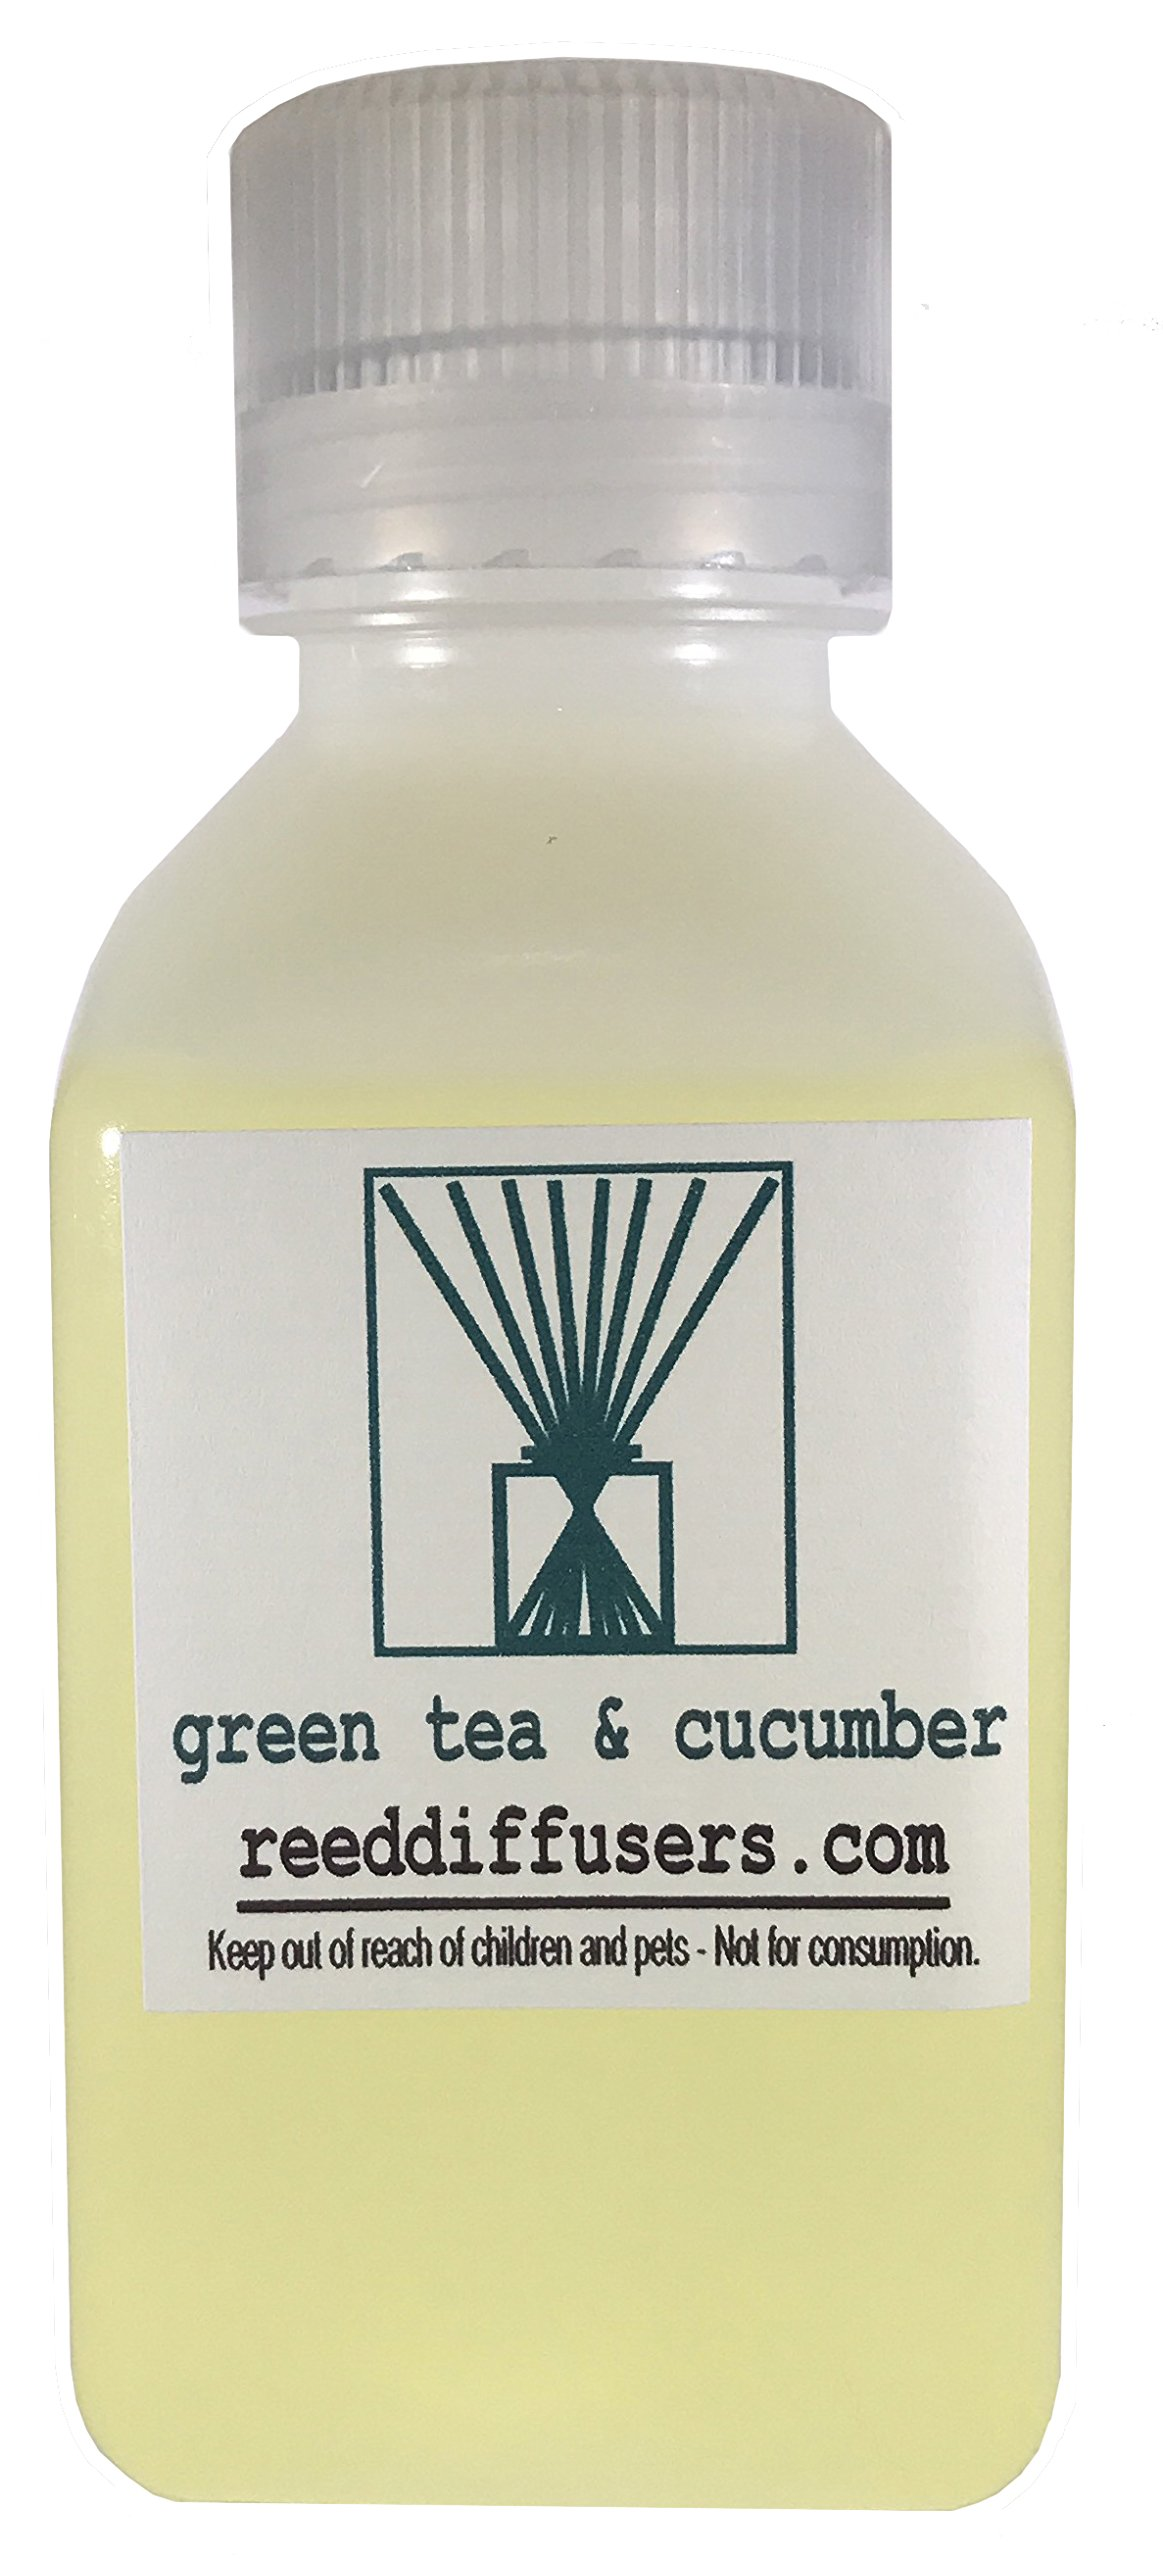 Green Tea & Cucumber Fragrance Reed Diffuser Oil Refill - 8oz - Made in the USA by ReedDiffusers.com